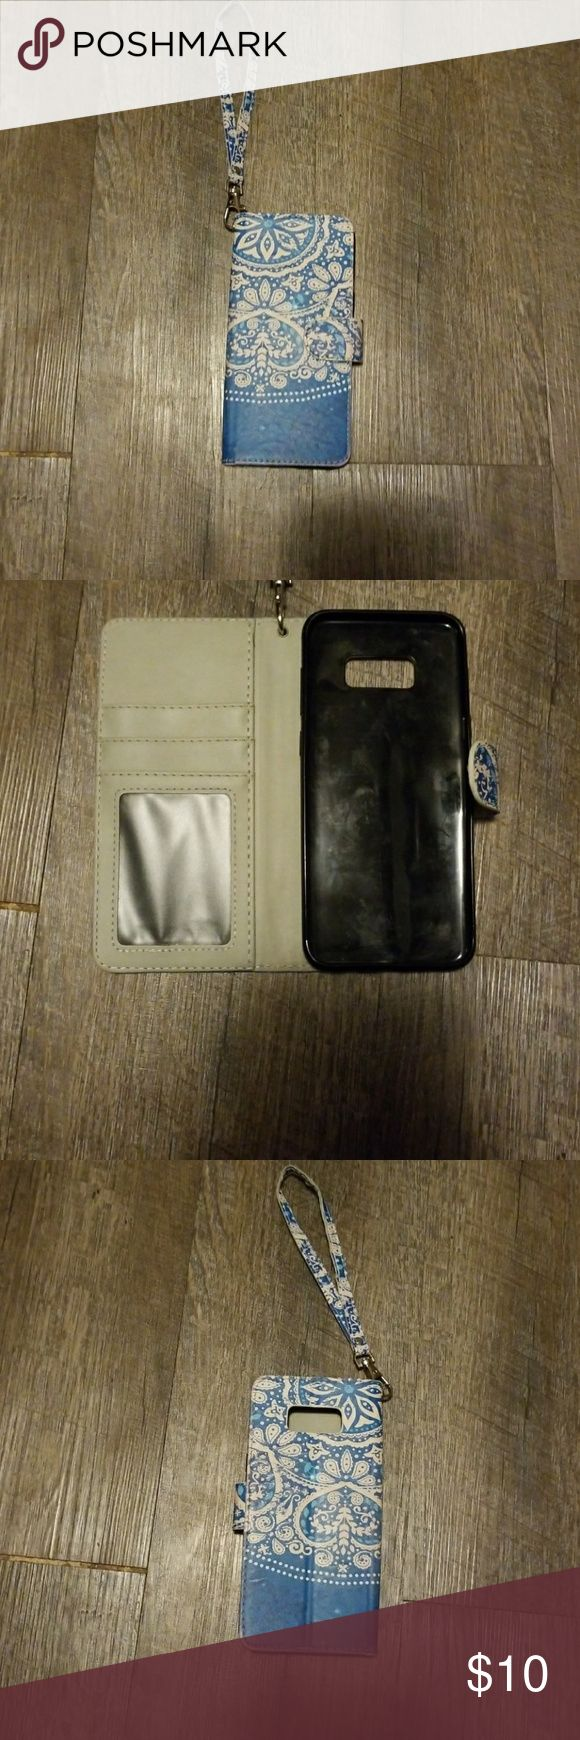 Wallet phone case Samsung Galaxy S8plus Cute blue and with pattern wallet phone case for a Samsung Galaxy s8 plus. Has a wrist attachment that clips on or off, magnetic latch, slits for cards and money, also turns into a phone stand. I've had this case for about 3 weeks. I just got an Otter box is the only reason I'm selling. Accessories